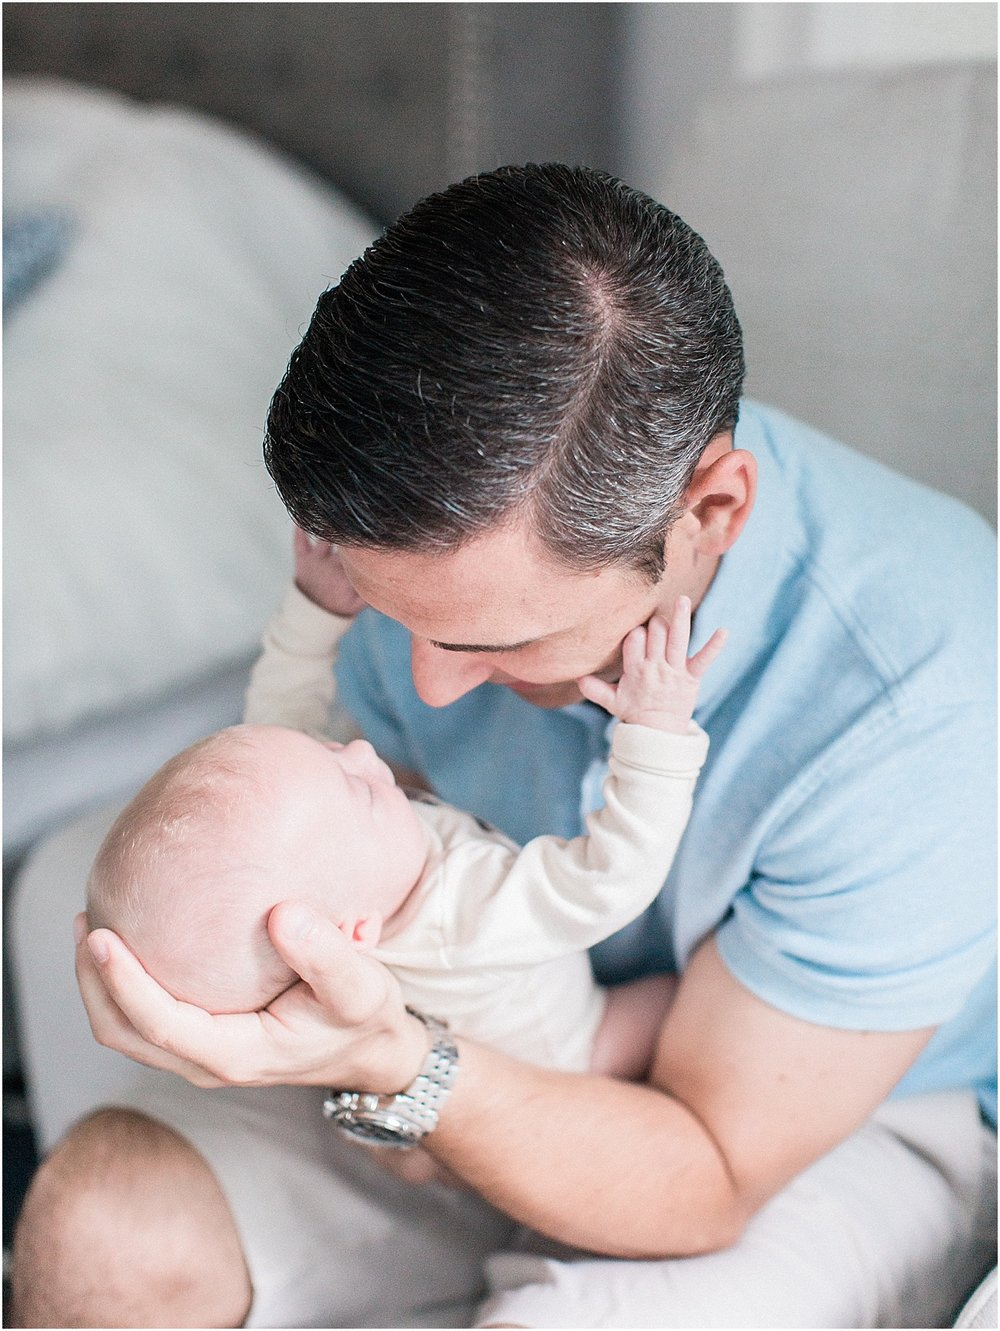 mia_jane_matt_brittany_newborn_lifestyle_neautral_gray_home_shoot_cape_cod_boston_wedding_photographer_meredith_jane_photography_photo_0642.jpg